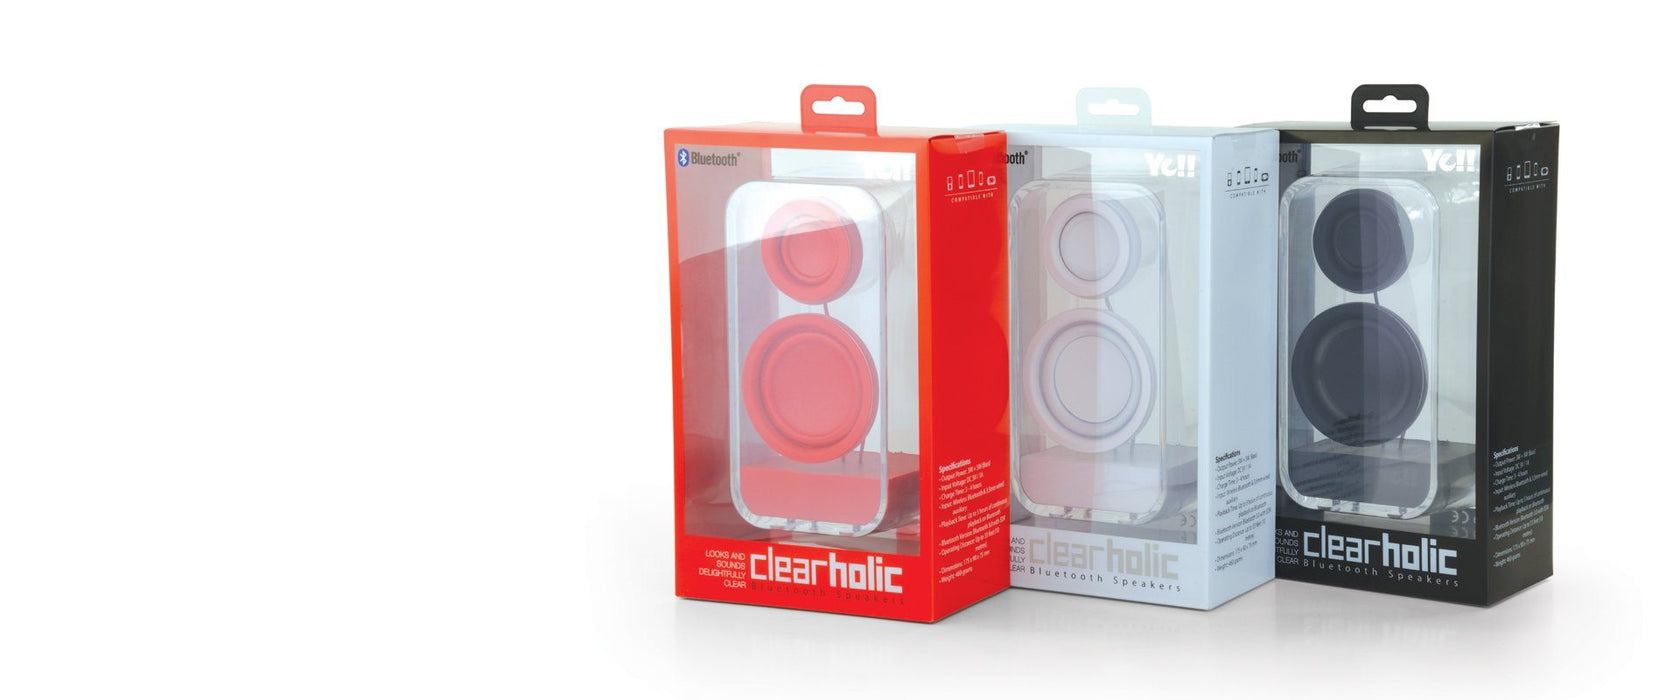 Ye!! Clearholic Transparent Speaker - Black 12 month warranty applies Tech Outlet